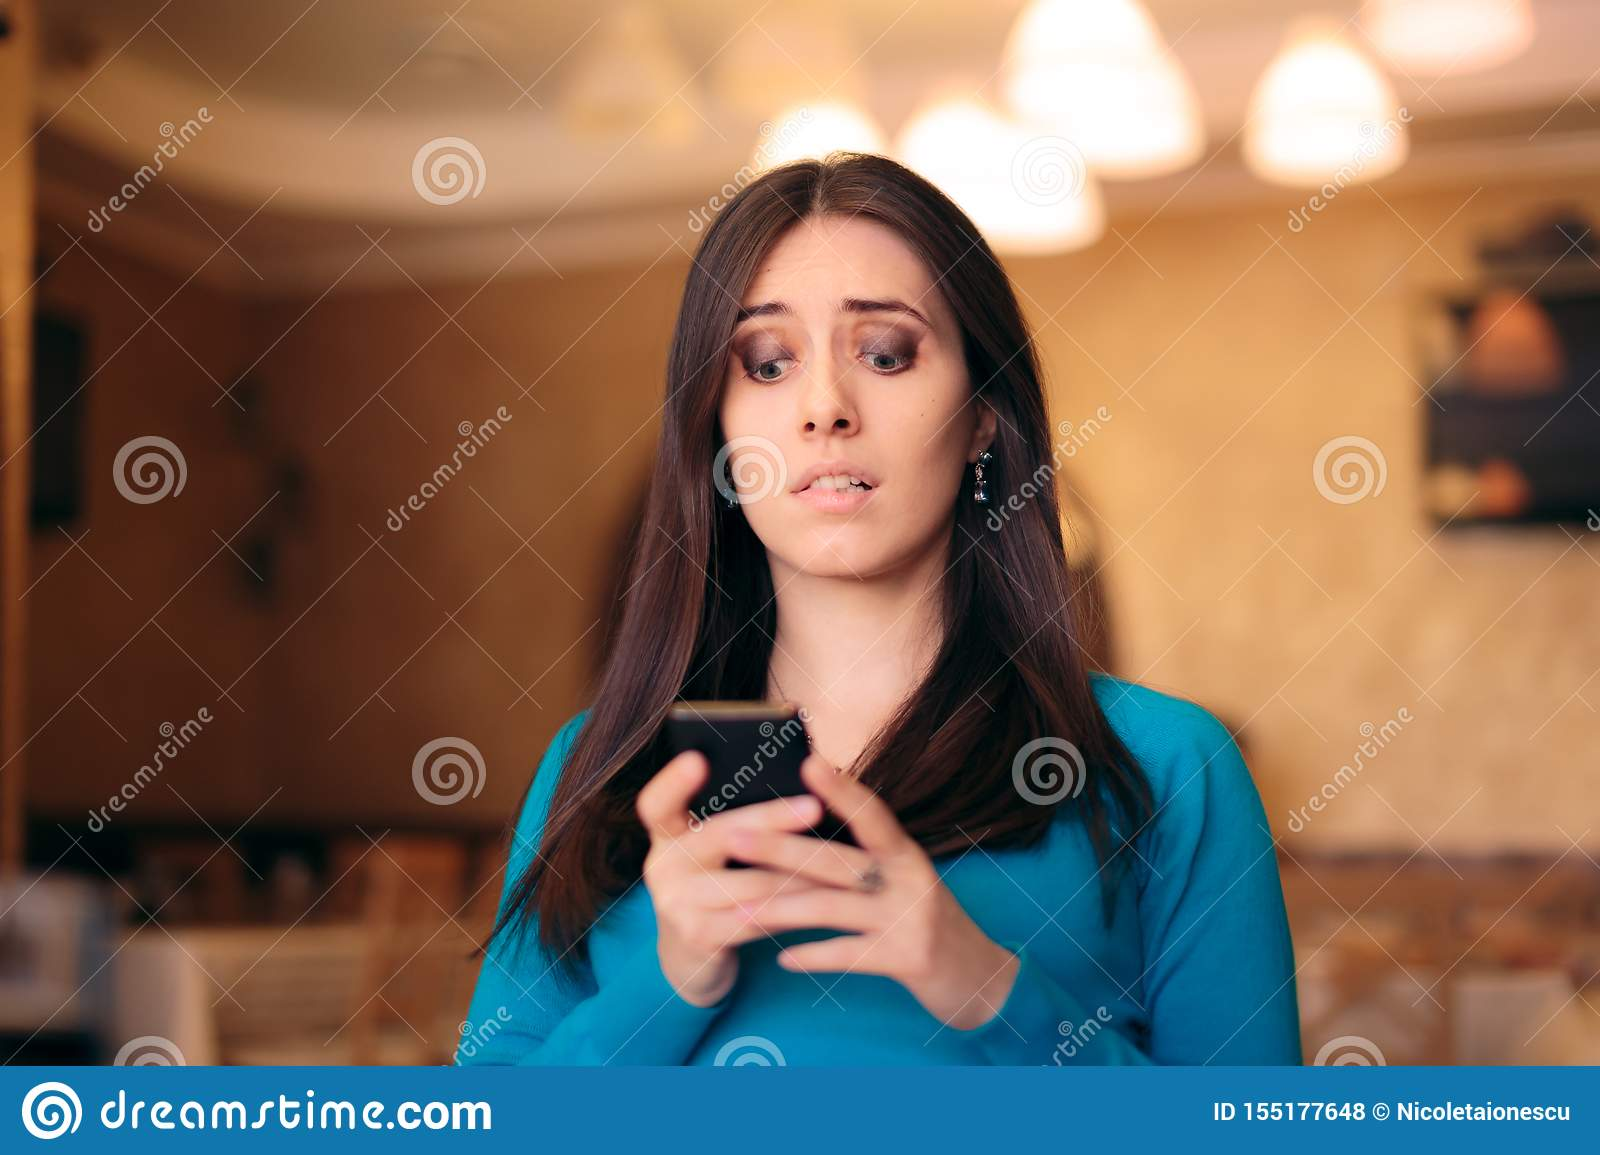 To is girl stressed a text who what Texts to